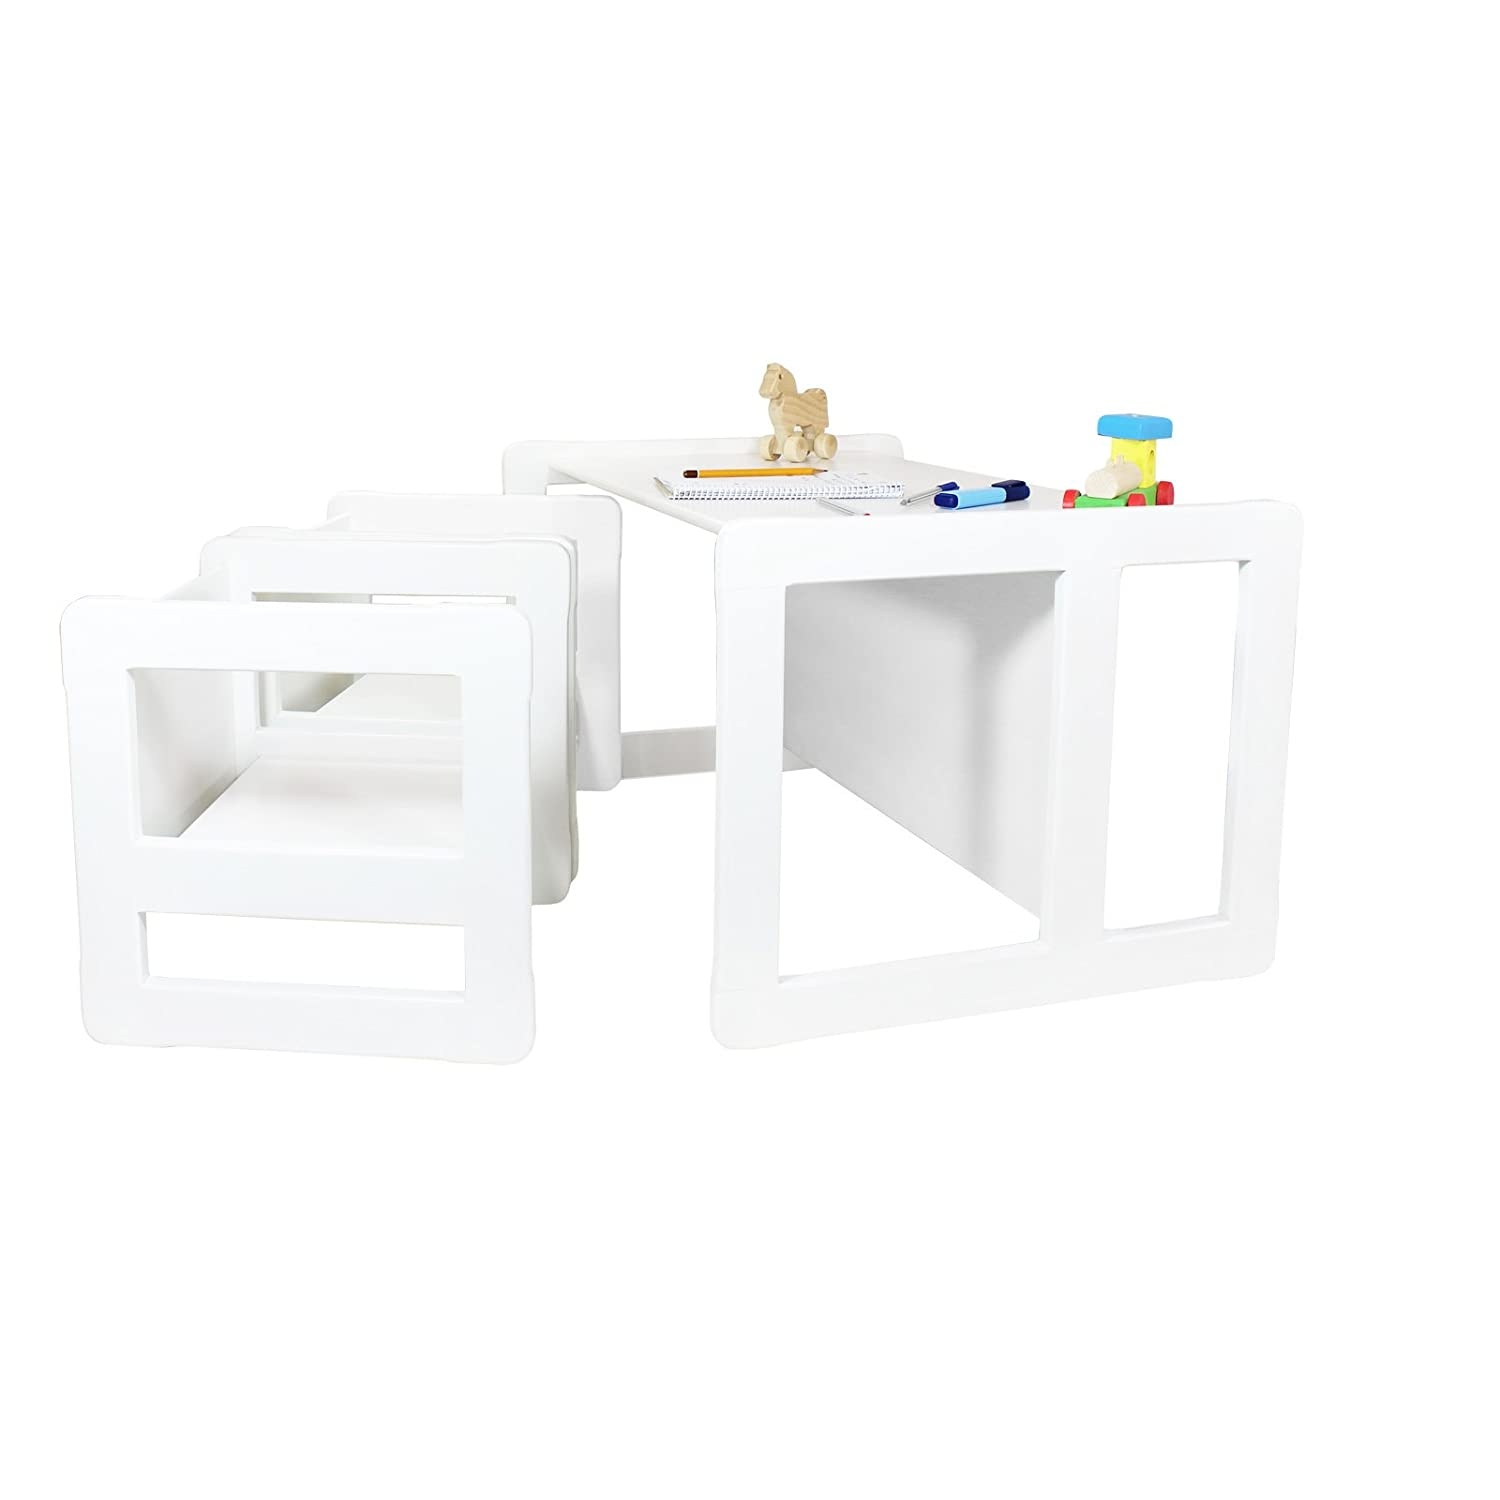 Obique 3 in 1 Children's Multifunctional Furniture Set of 3, Two Small Chairs Tables One Large Bench Table Beech Wood, White Stained OB_SET_O_00109